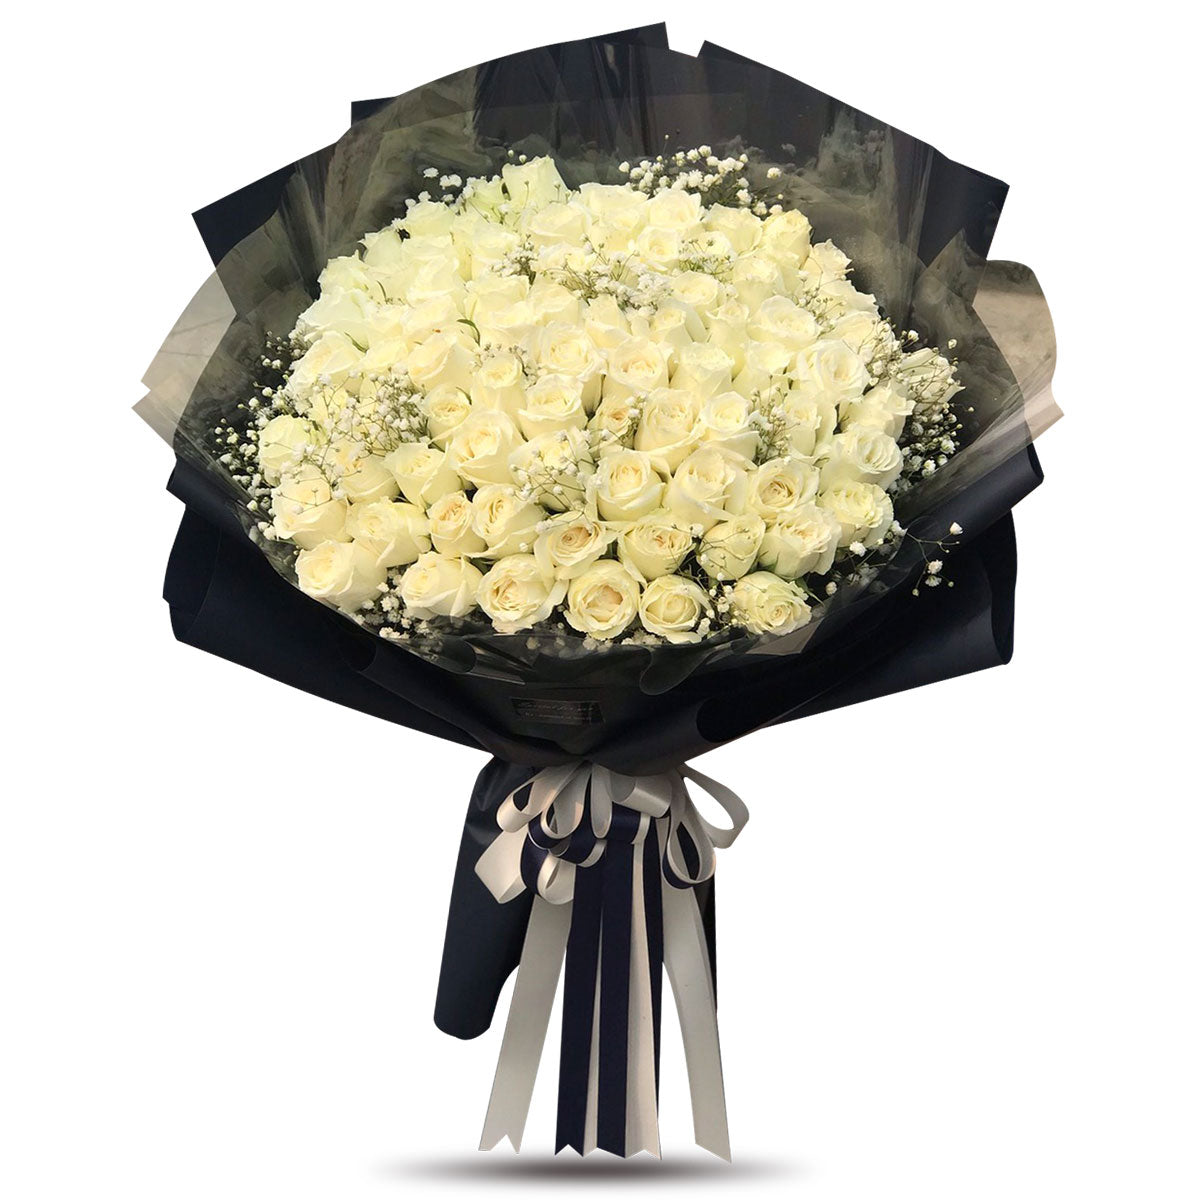 XXL Bouquet Of 100 White Roses